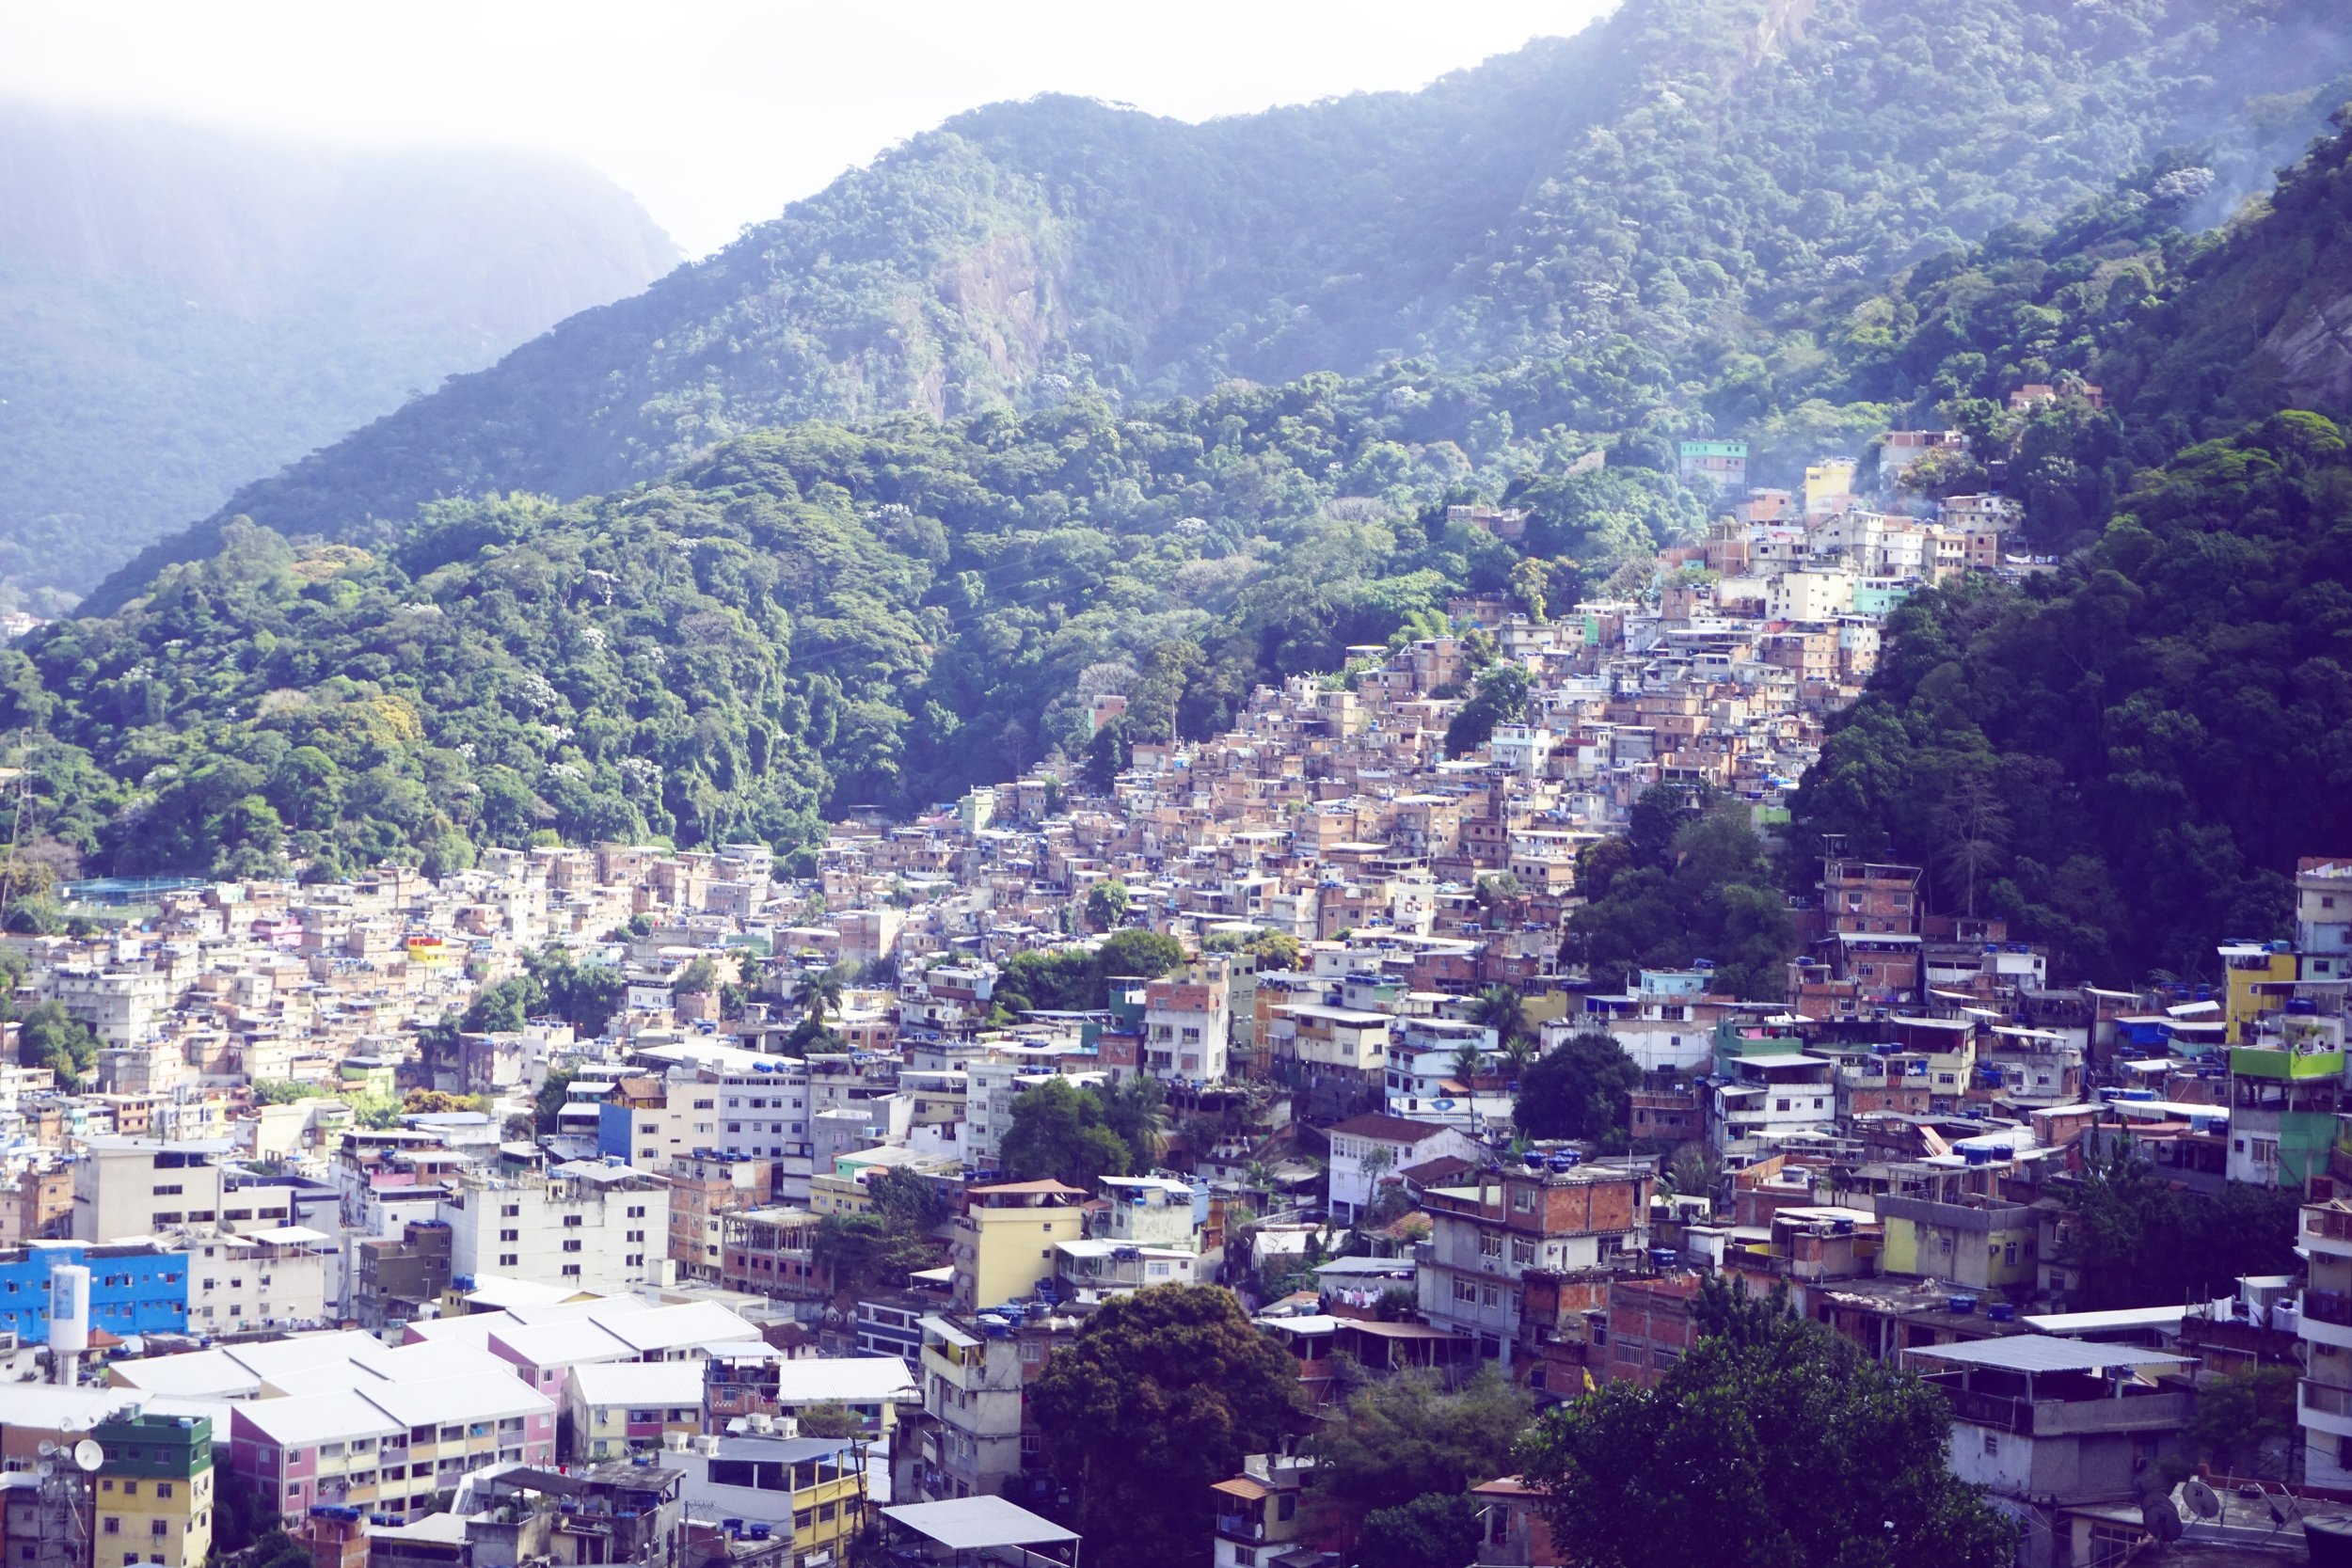 A glimpse of colourful, smoky &peaceful looking Rocinha